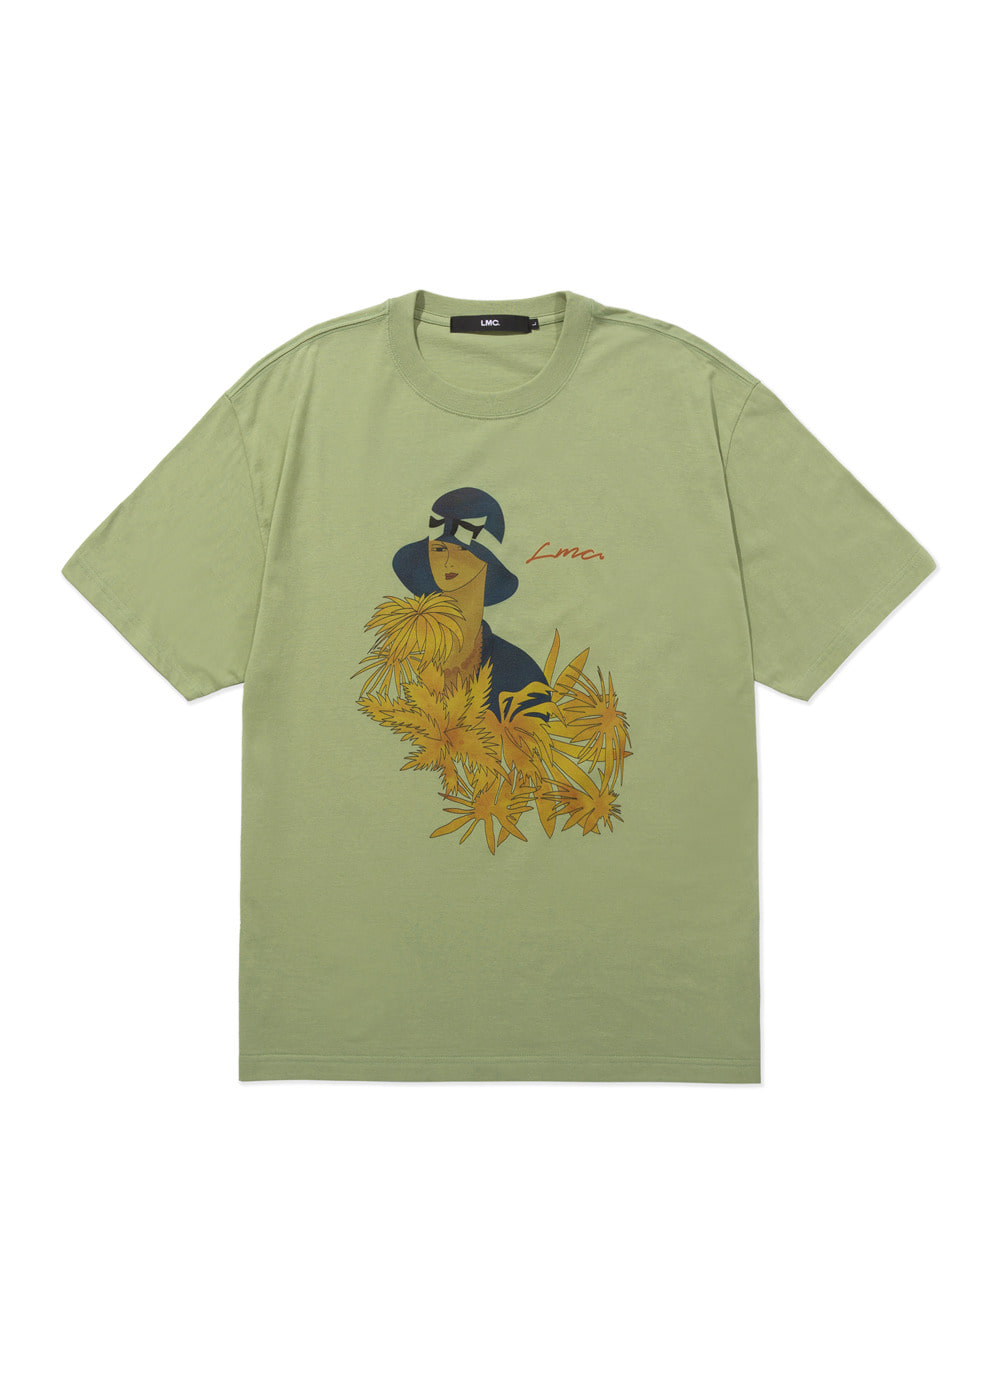 LMC NOBLE TEE lt. green